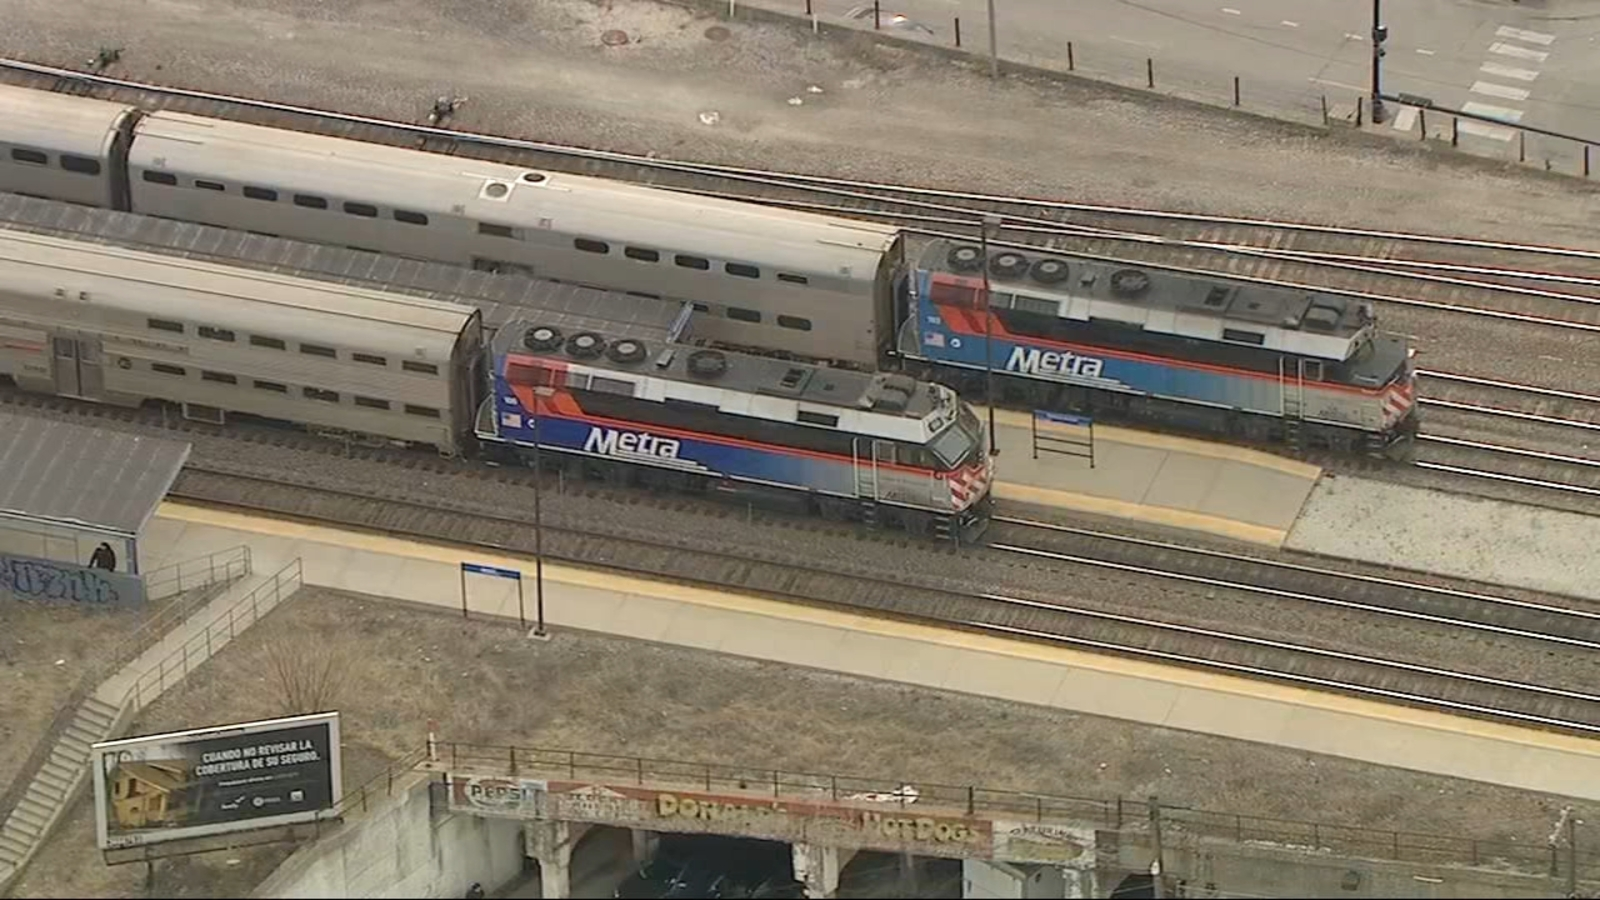 Metra works with Amtrak to improve commute, adds new rail cars